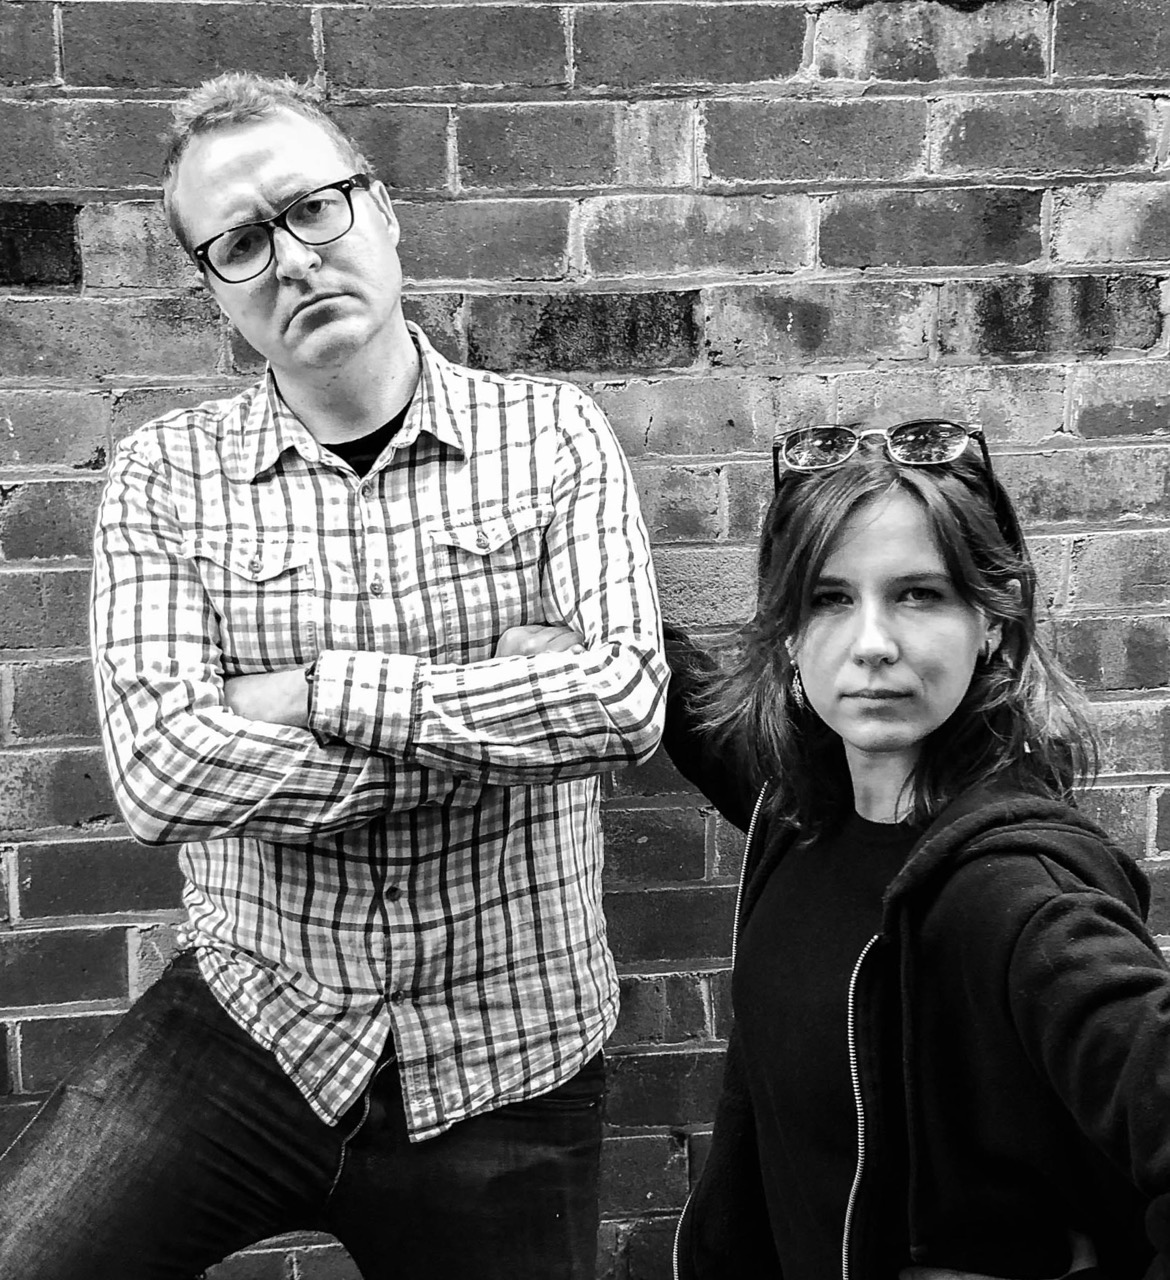 Mammal appoints Robert Cartlidge as creative consultant and Valeria Camin as art director